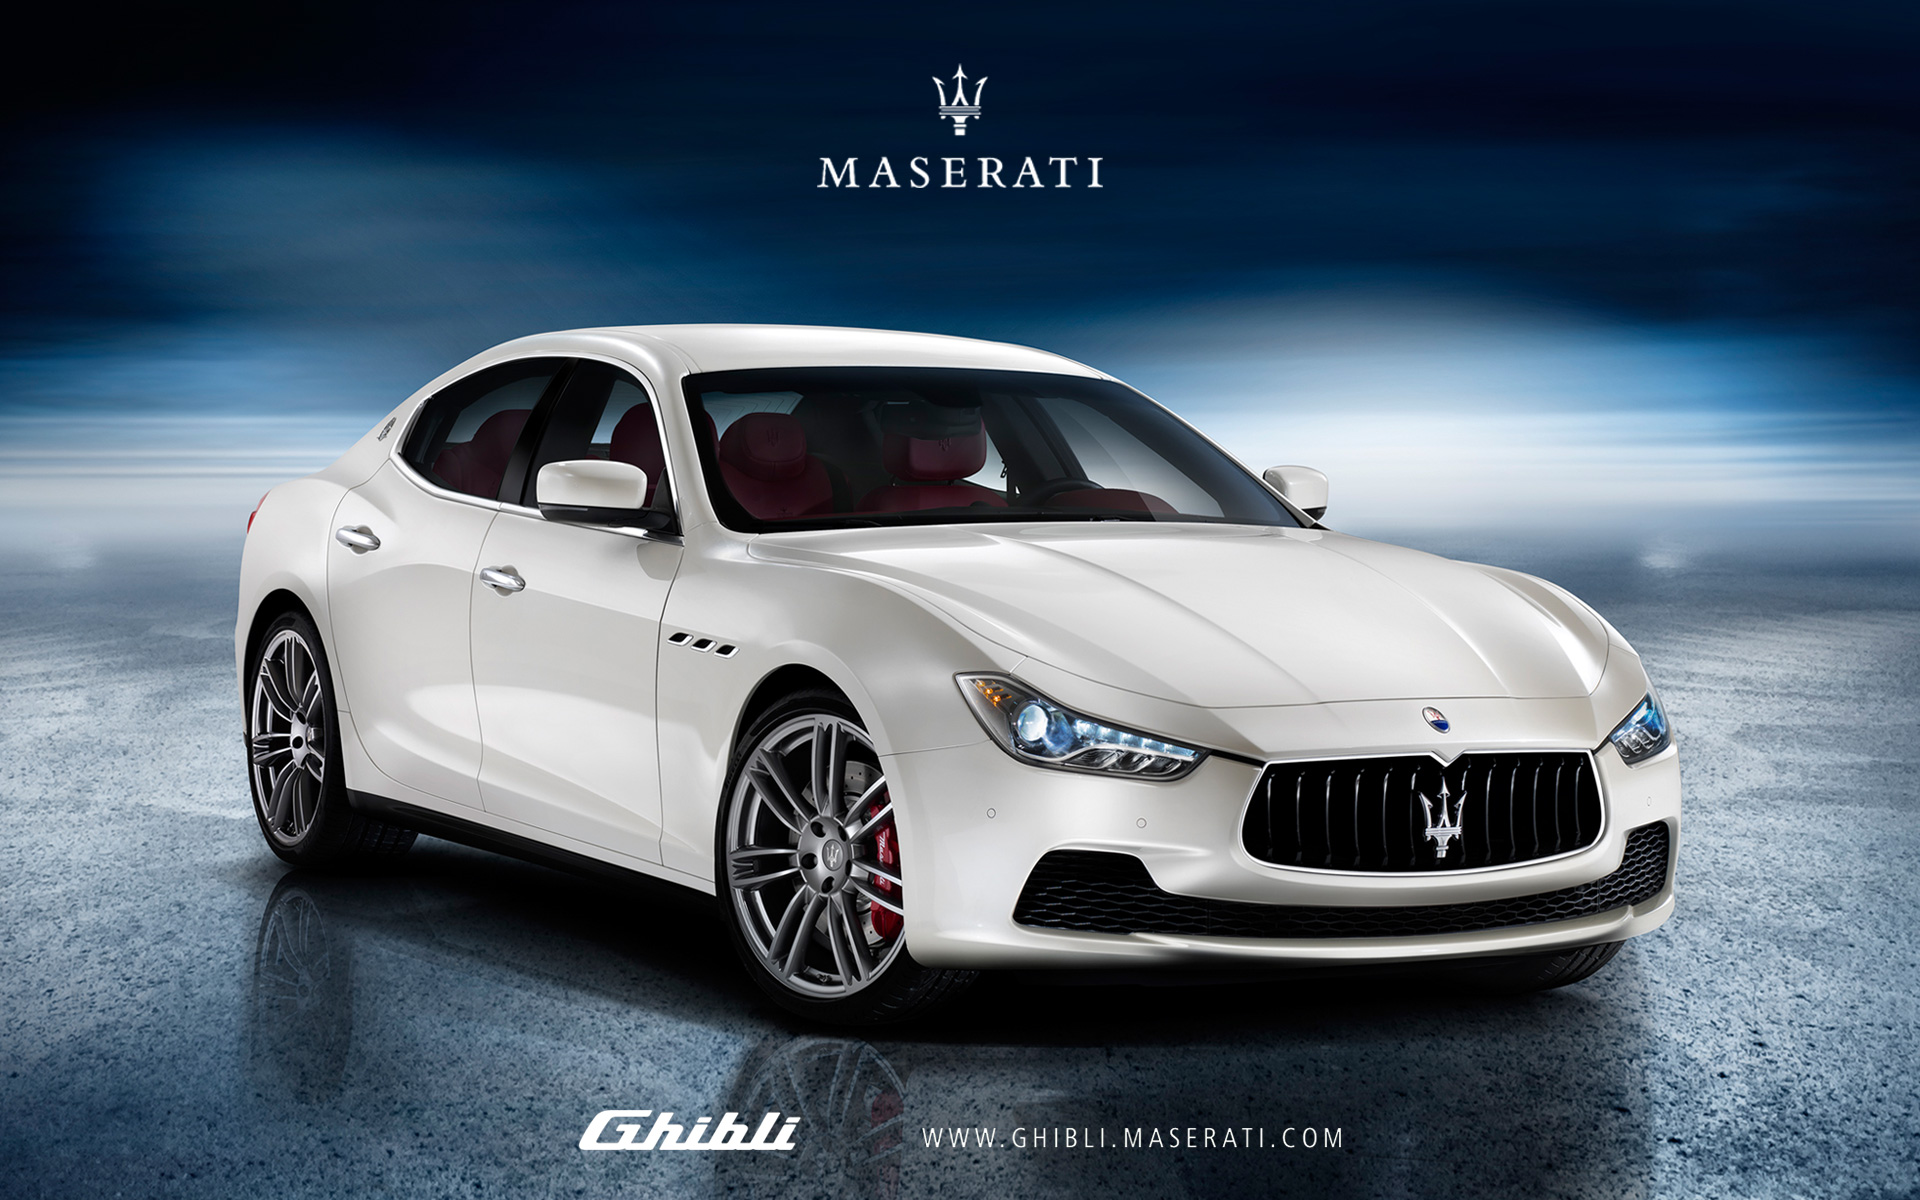 maserati ghibli specs 2013 2014 2015 2016 2017 autoevolution. Black Bedroom Furniture Sets. Home Design Ideas